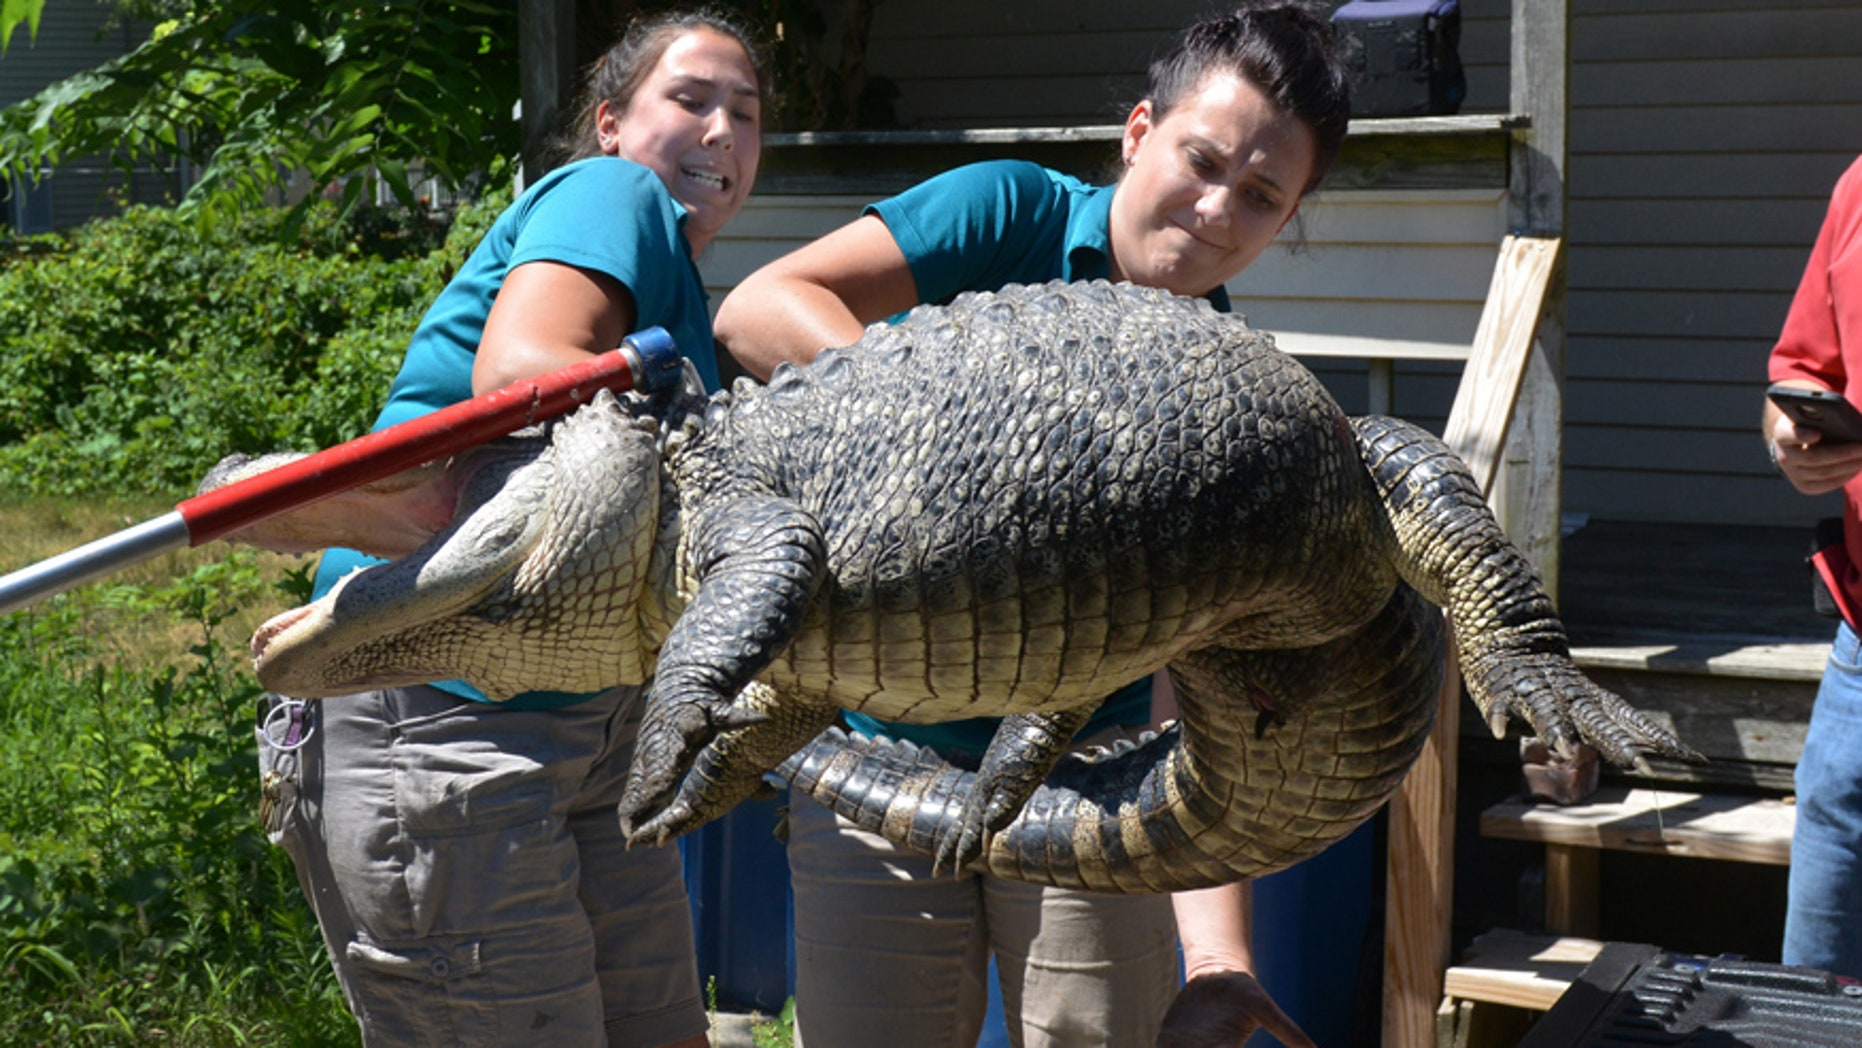 Aug. 4, 2016: West Springfield- Representatives from the Zoo at Forest Park in Springfield, Mass., handle a 6-foot long 150 pound alligator found in the backyard in West Springfield, Mass.